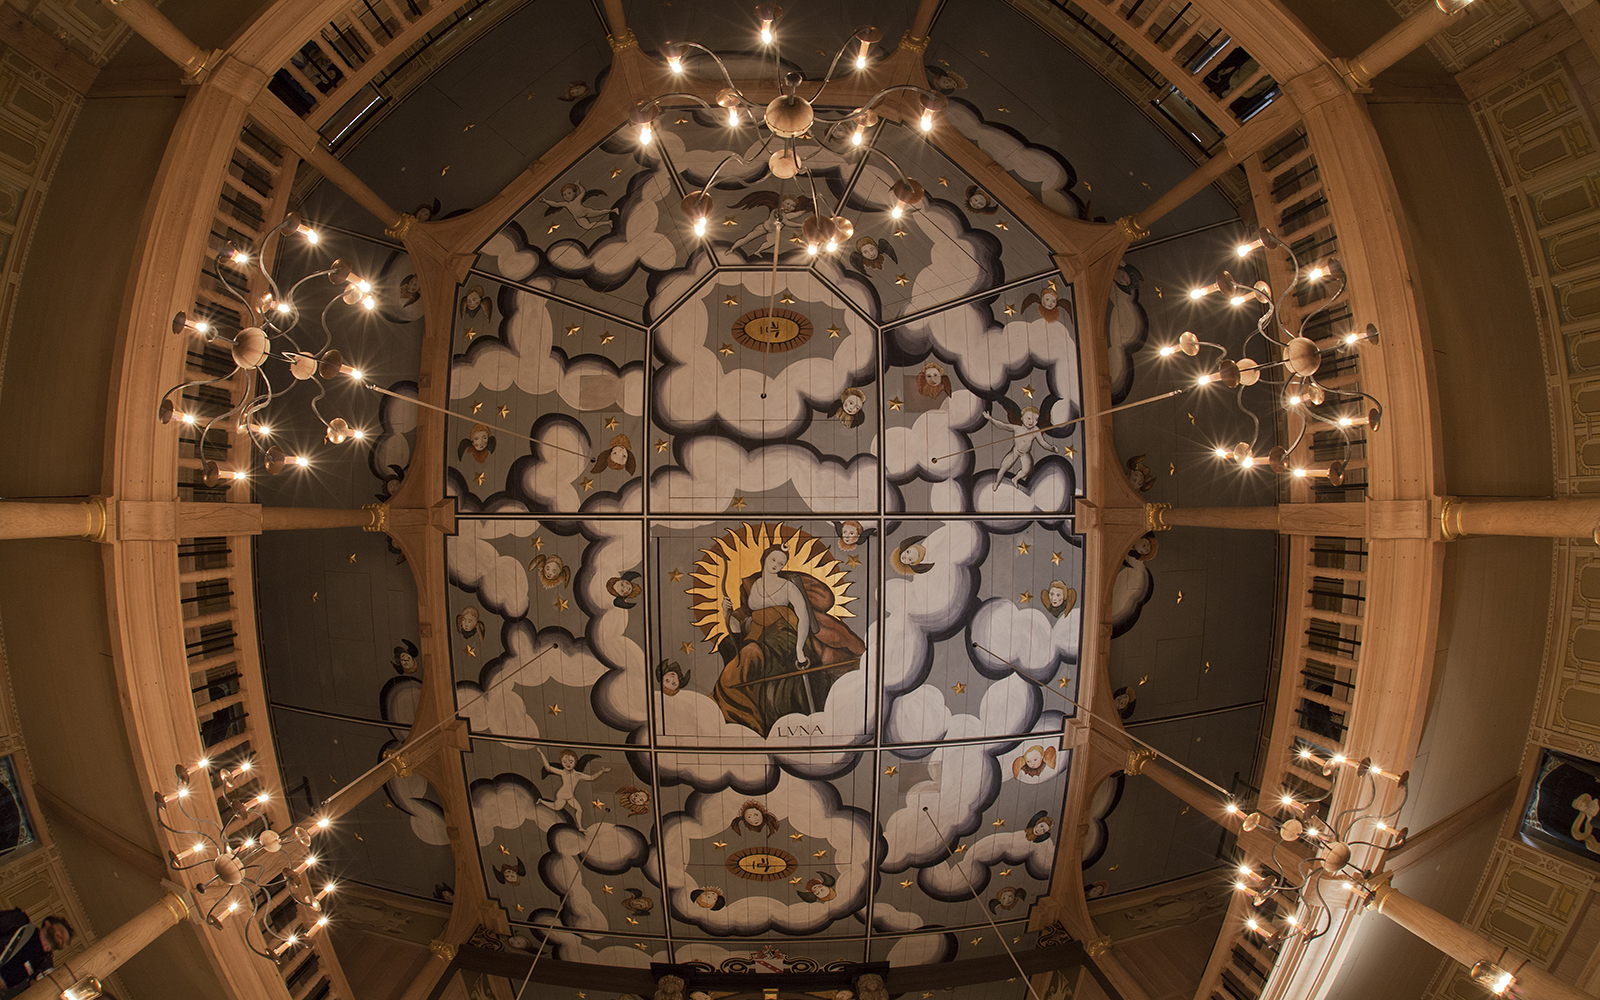 An intricately painted ceiling, looking up at it from below